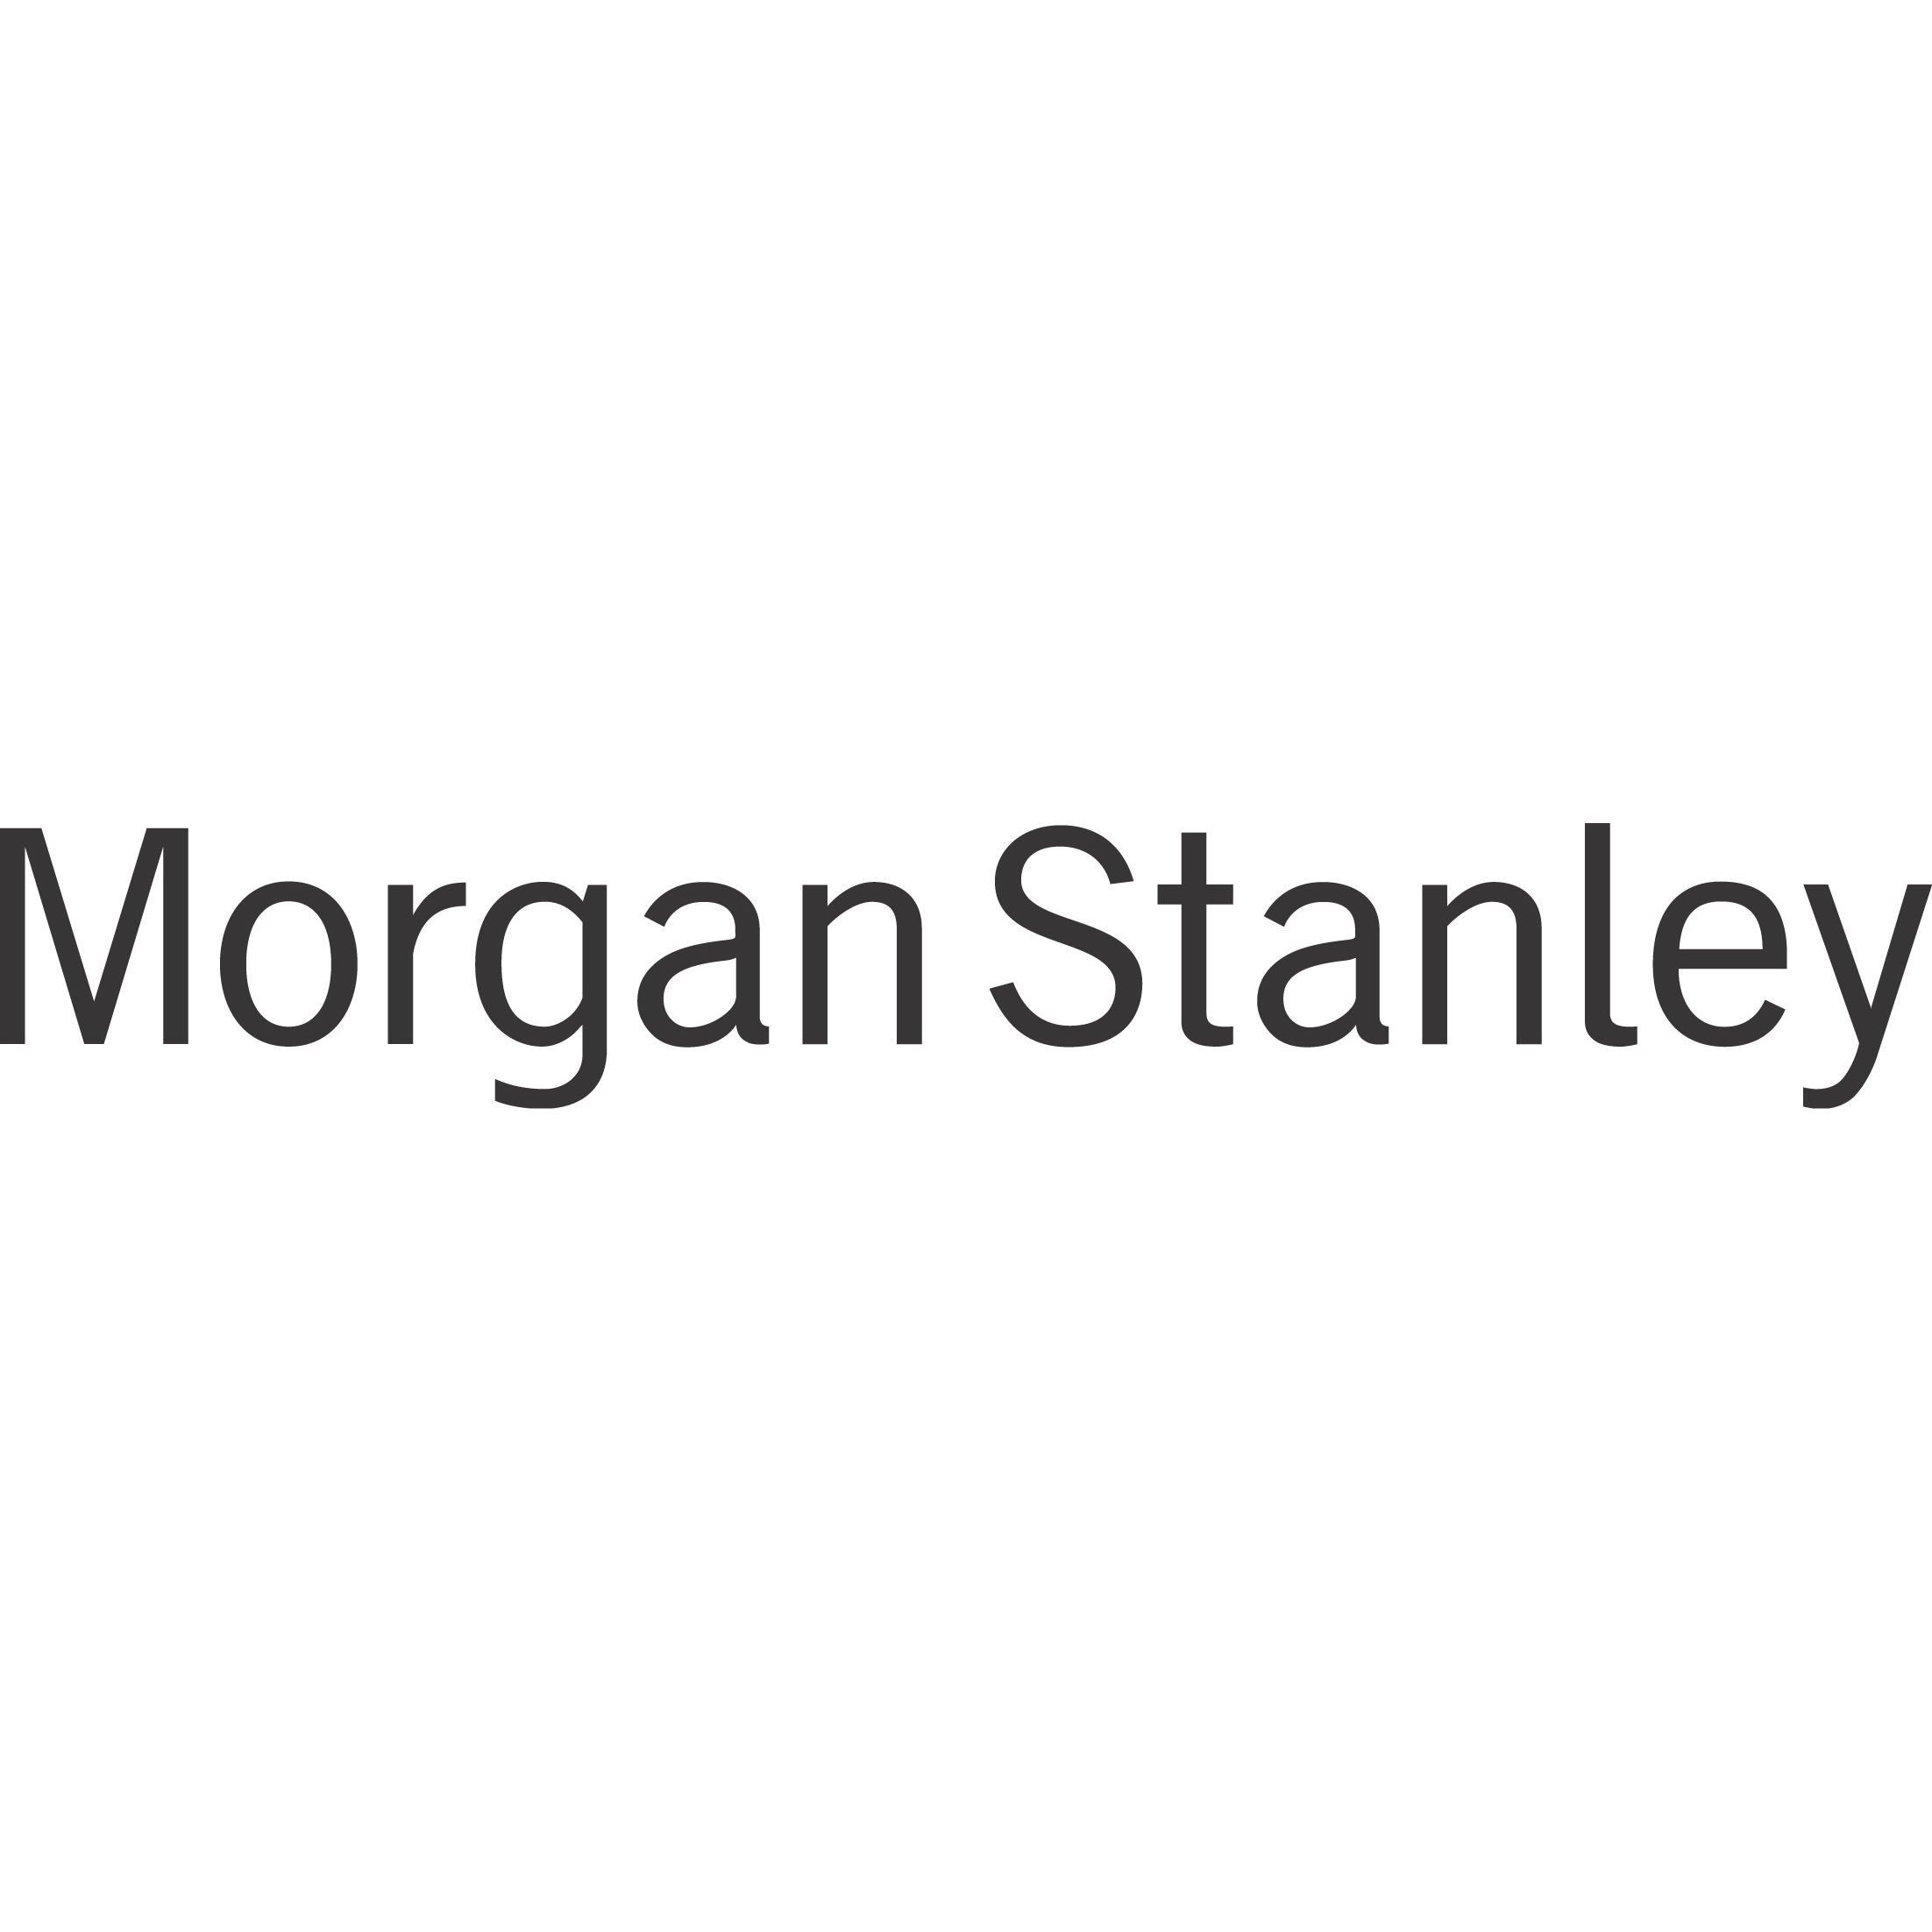 Nick A. Peterson - Morgan Stanley